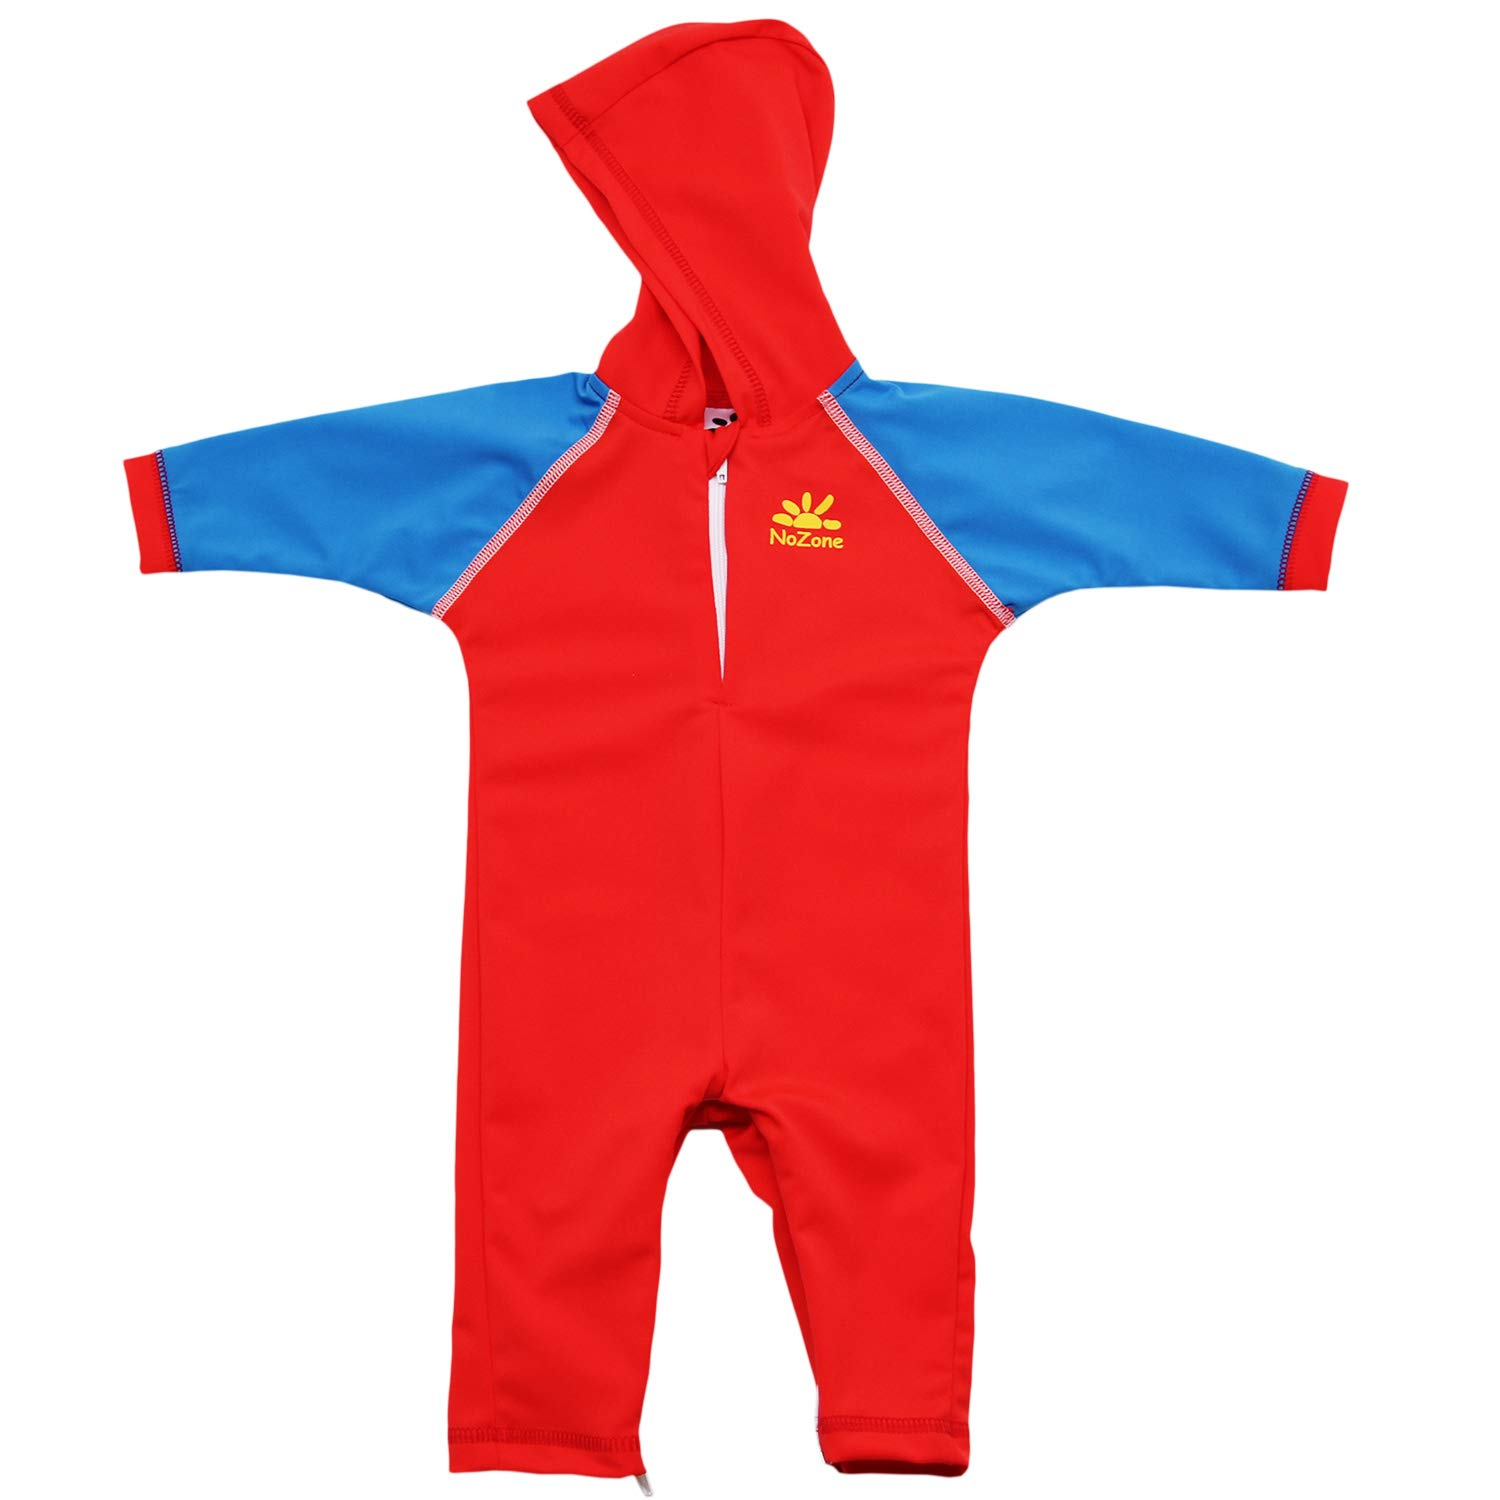 Nozone Kailua Sun Protective Hooded Baby Swimsuit in Red/Capri, 6-12 mo. by Nozone